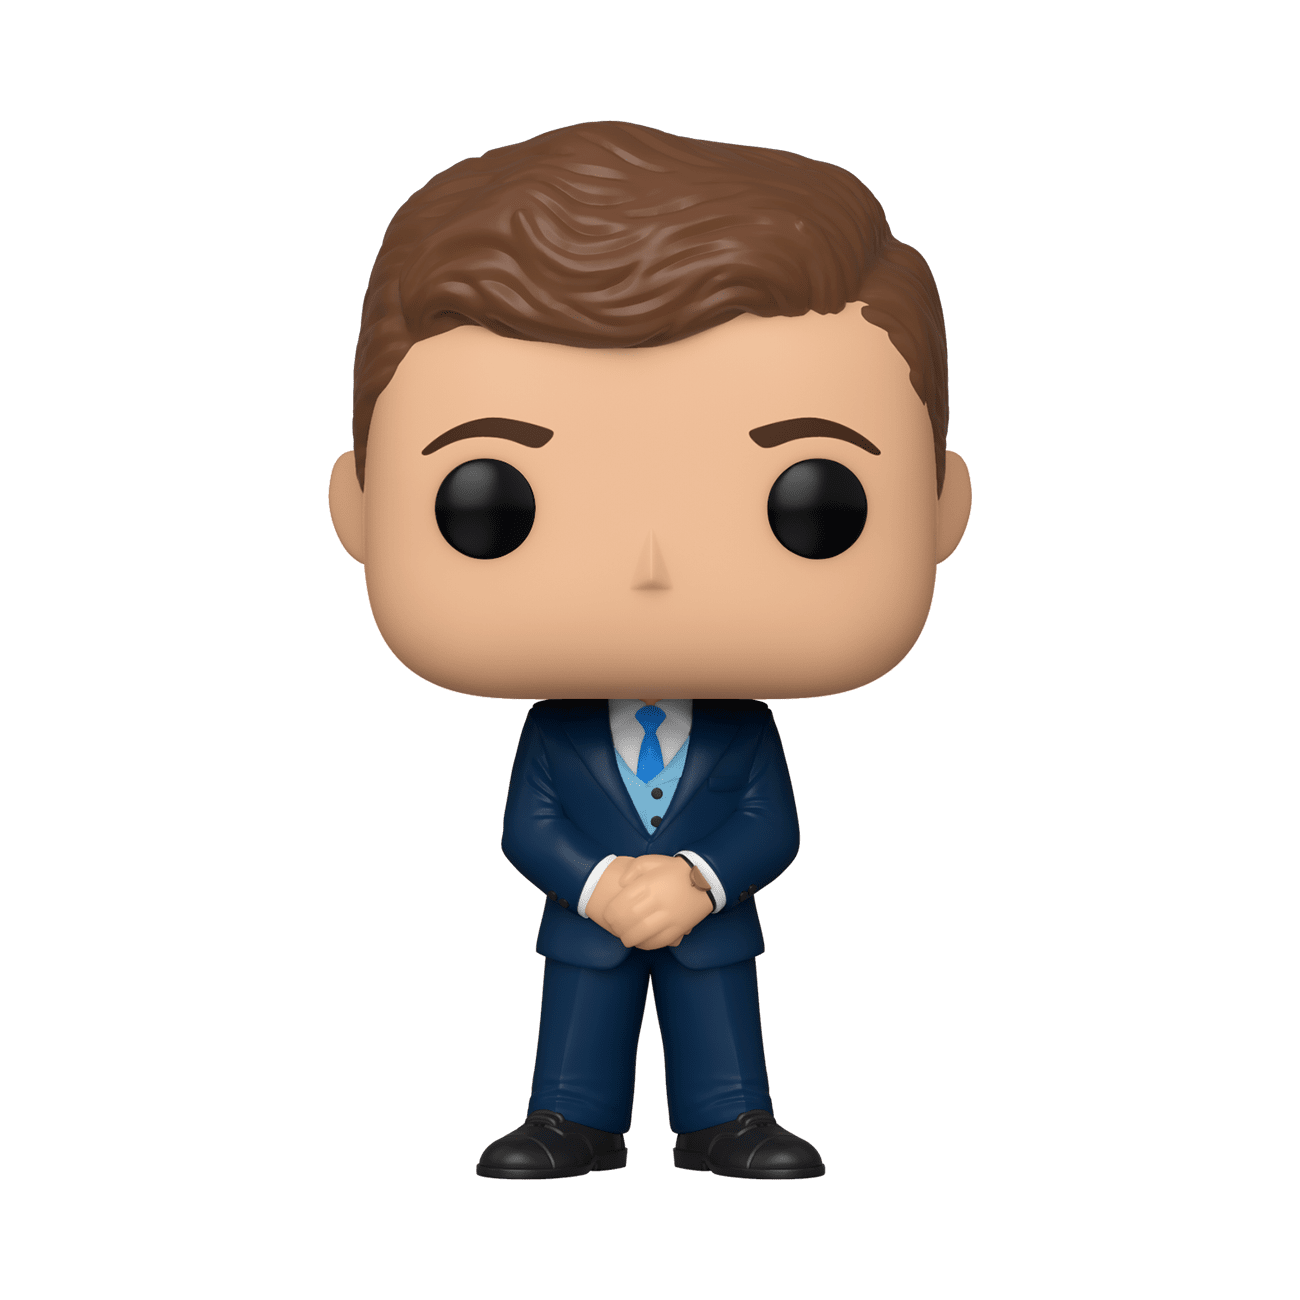 45253_Icons_JohnFKennedy_POP_GLAM-WEB-099bdcc3006afbb046011ce3094ae0f6.png